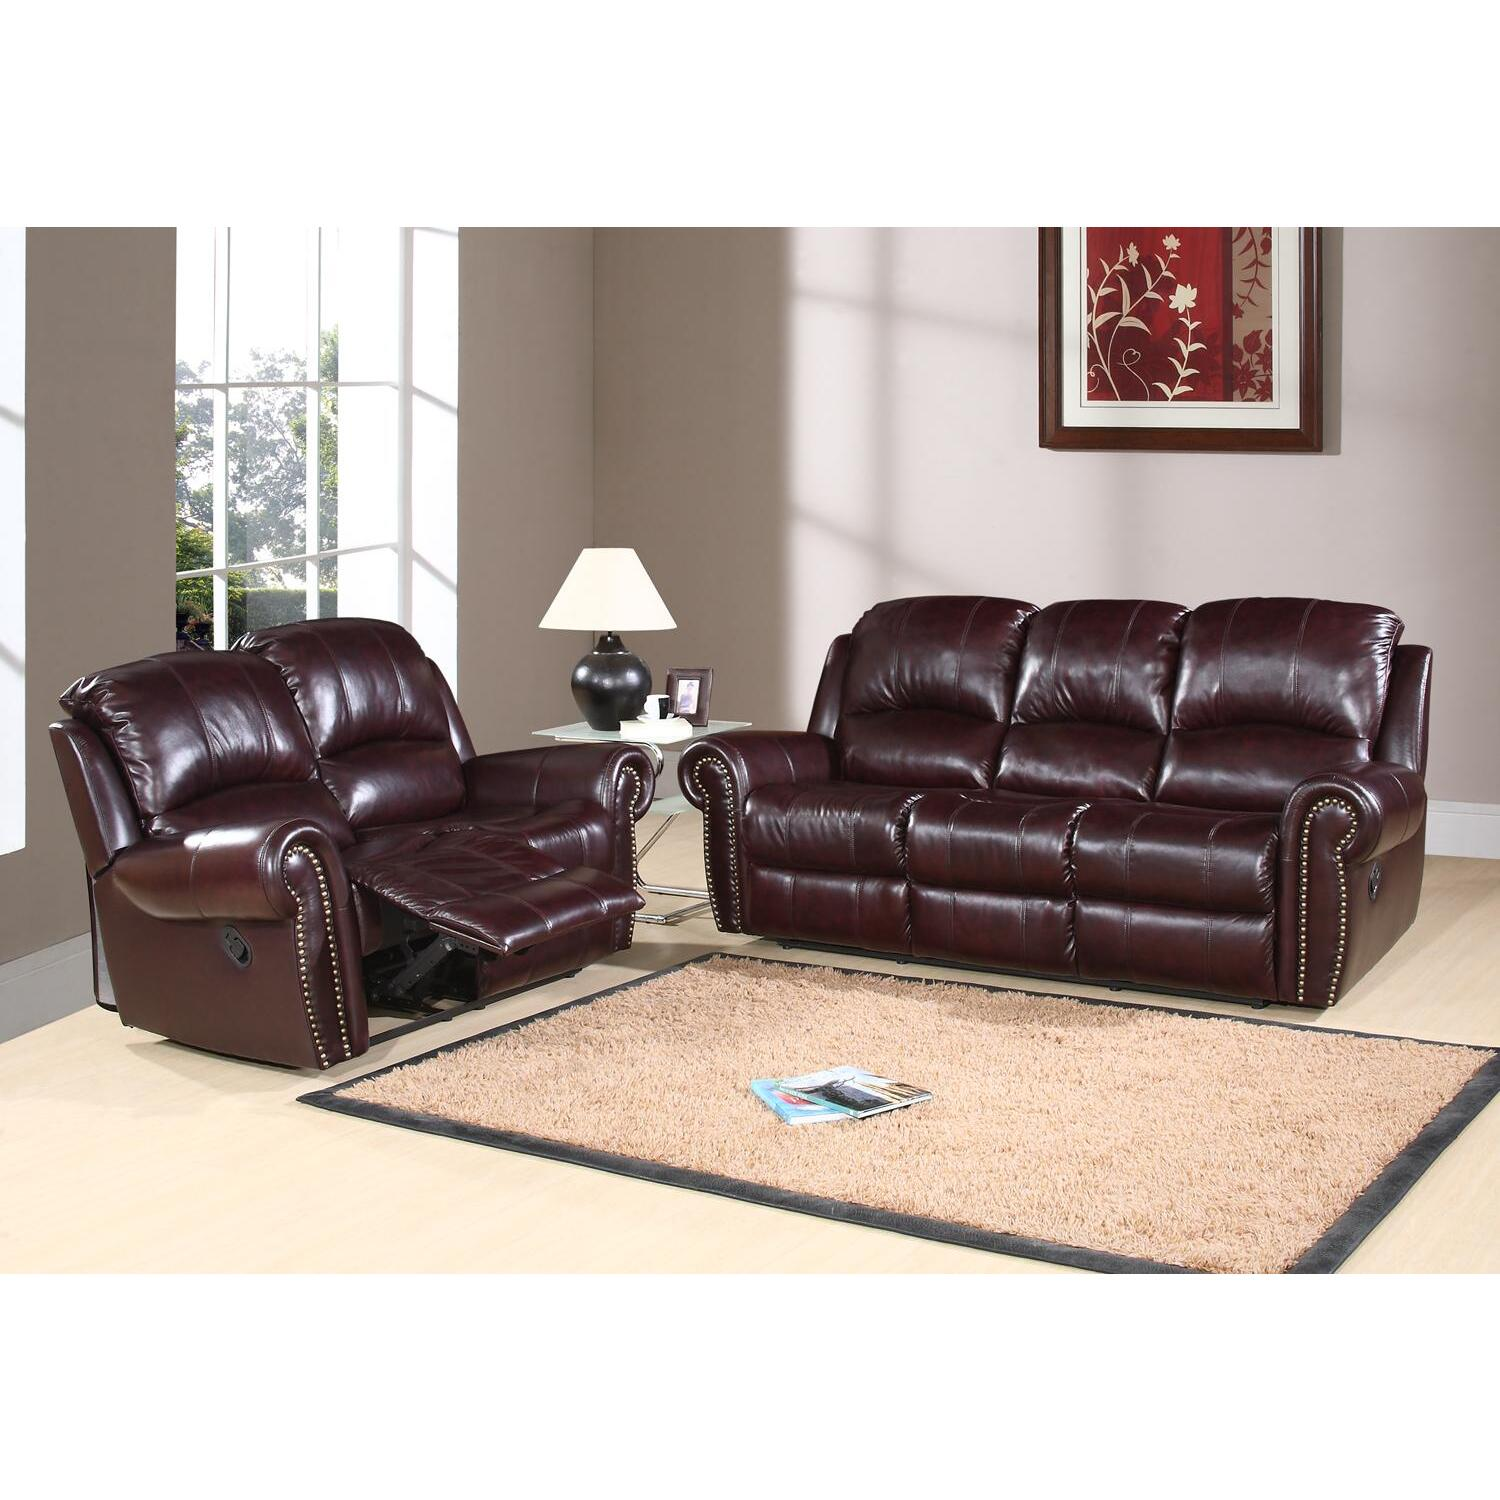 Abbyson Living Reclining Italian Leather Sofa And Loveseat By Oj Commerce Abbl23 2